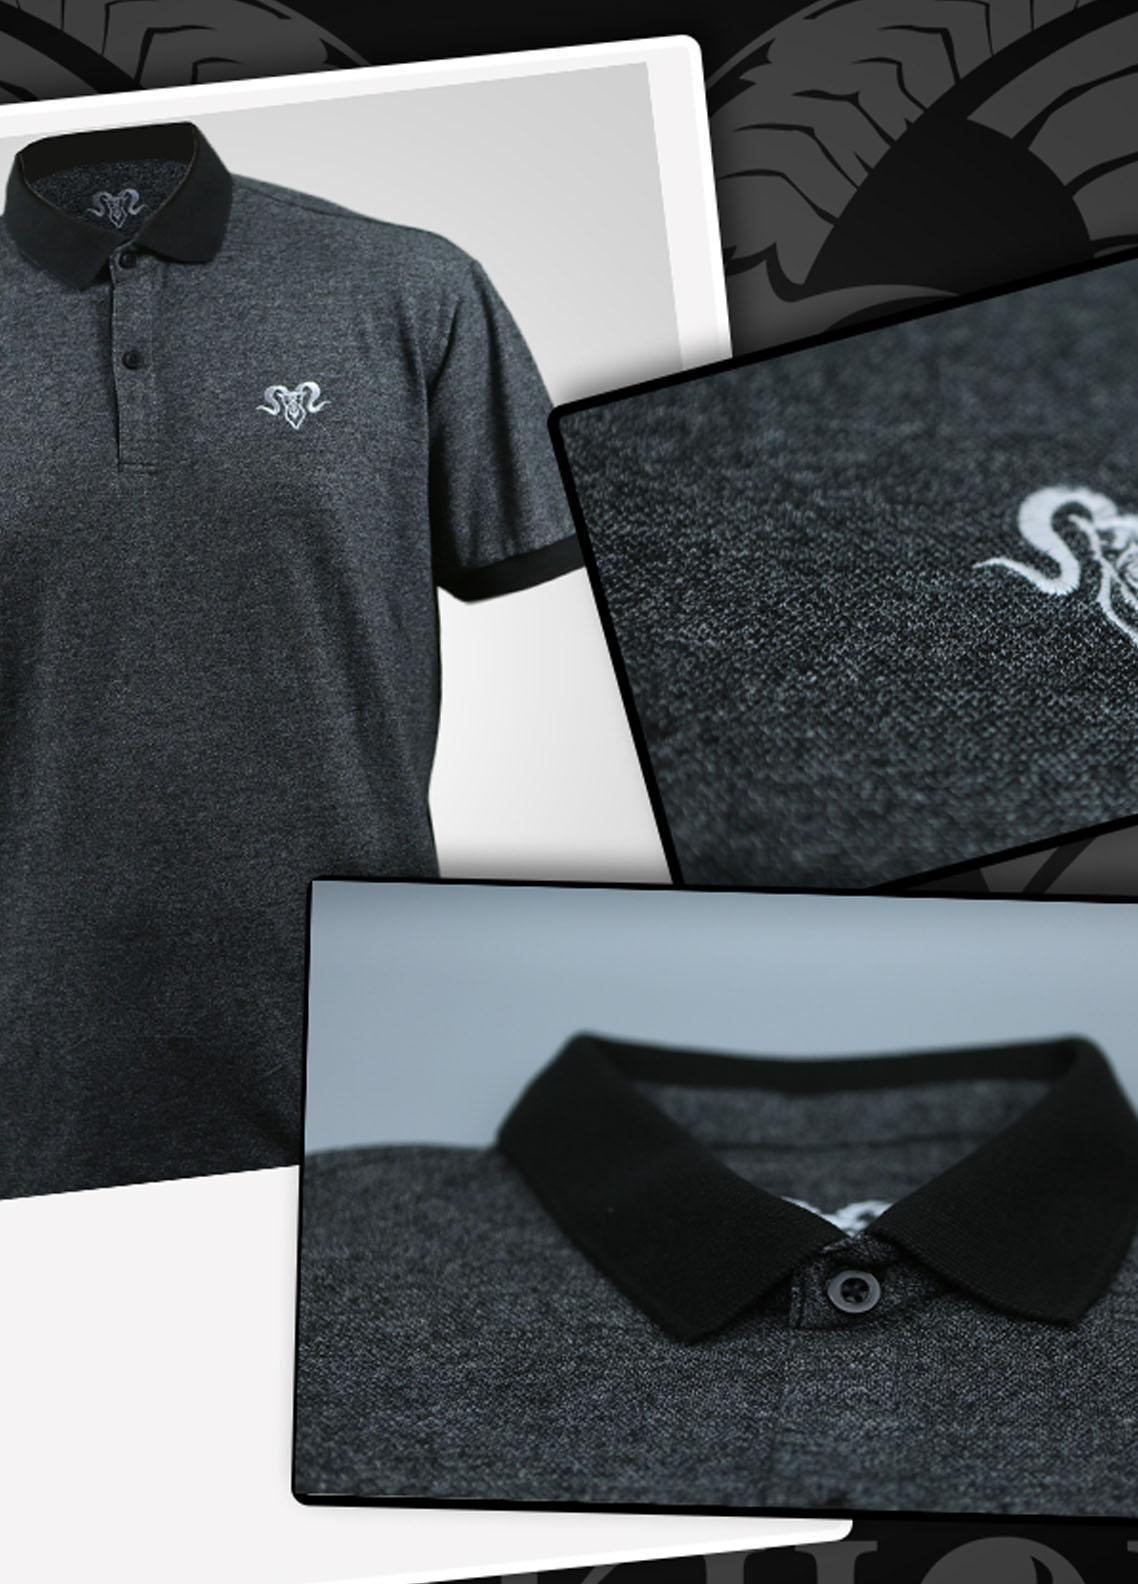 Markhor Clothing Cotton Casual Shirts for Men - Grey  Royal White Embroidered Charcoal Color Summer Polo Shirt